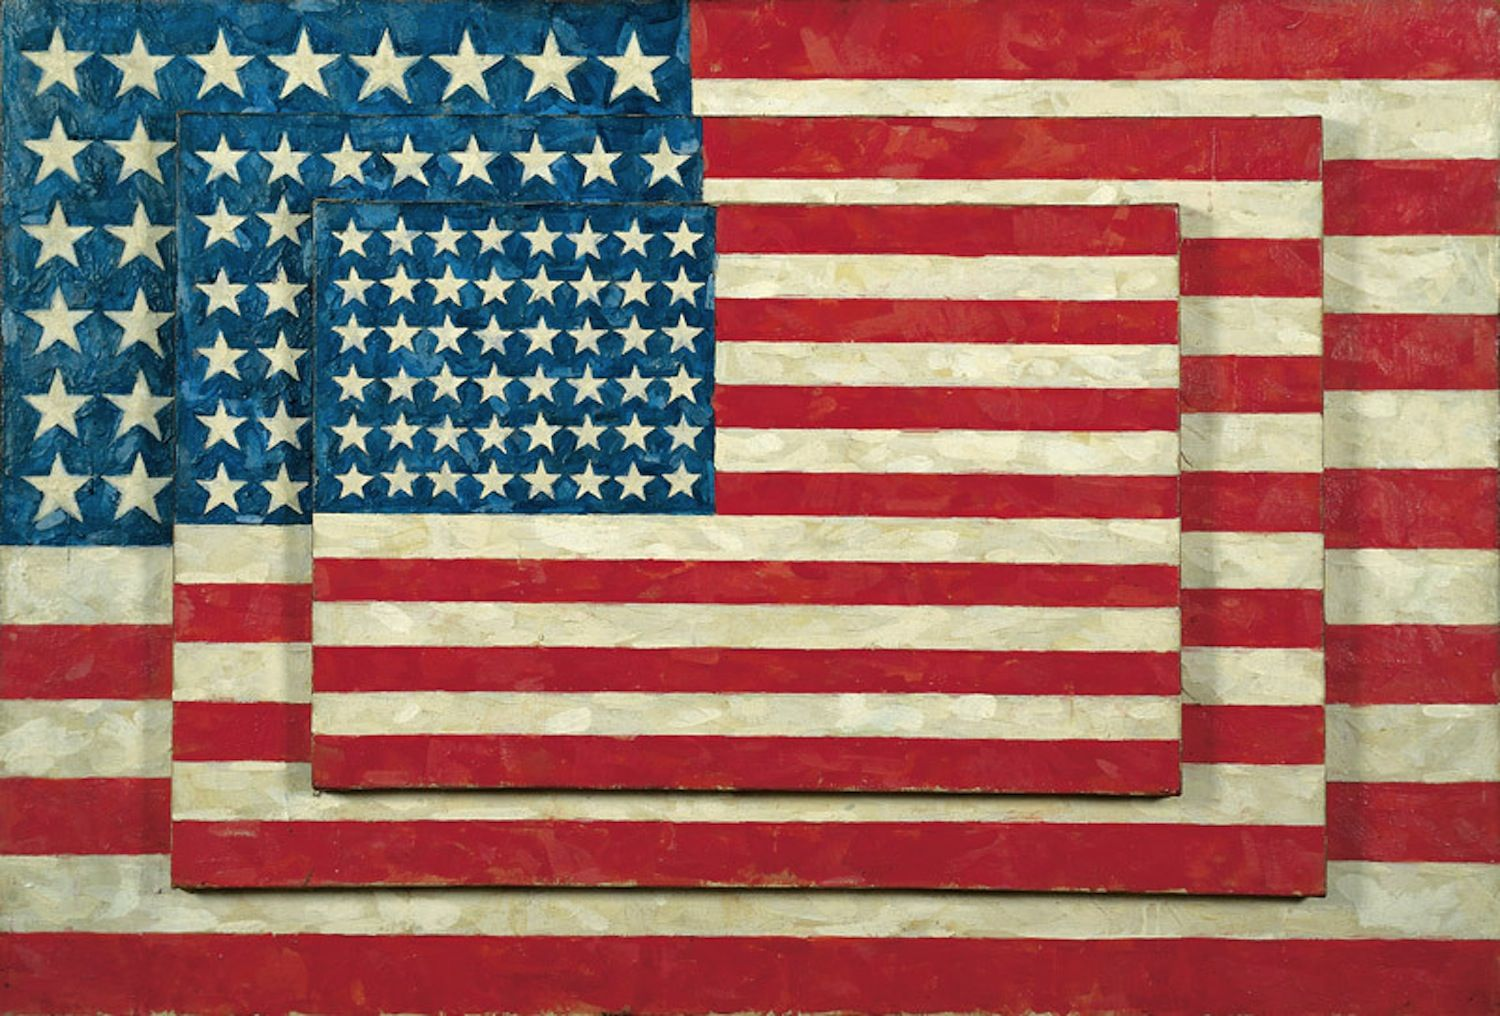 Jasper Johns Three Flags 1958 Encaustic On 3 Canvases 30 7 8 45 1 2 5 Inches Collection The Whitney Museum Of America Jasper Johns American Art Pop Art